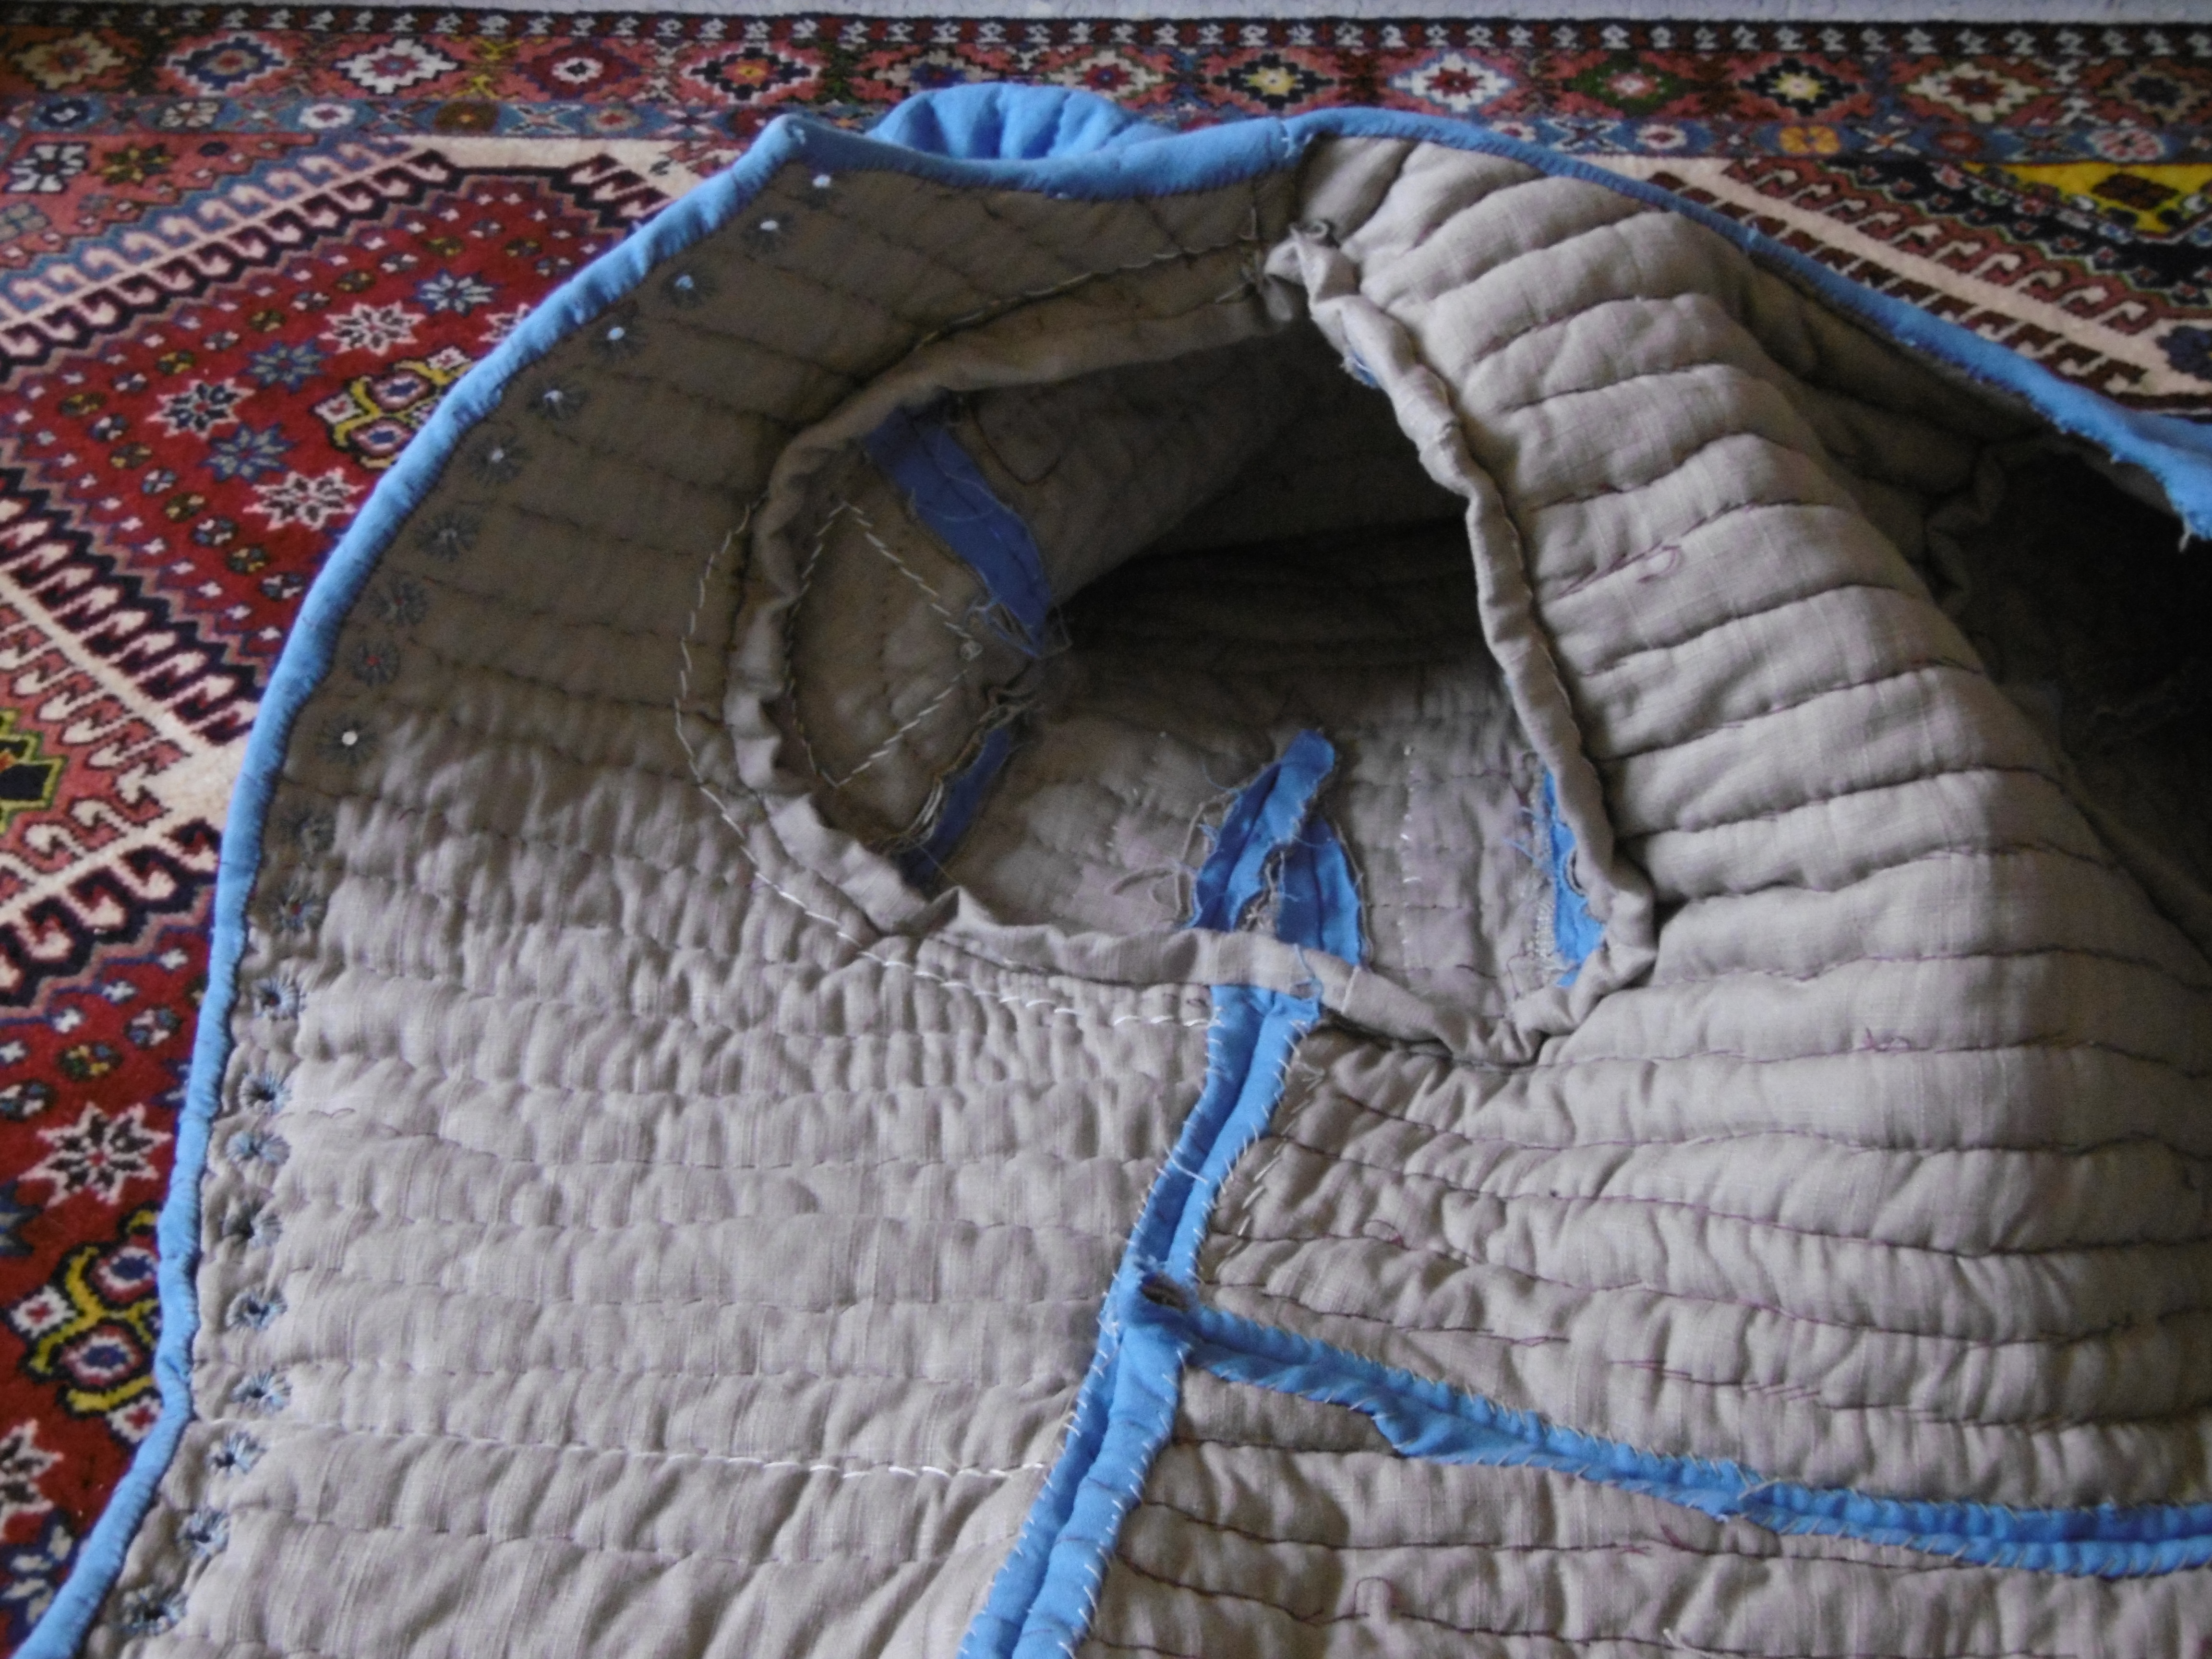 A quilted garment against the background of a carpet